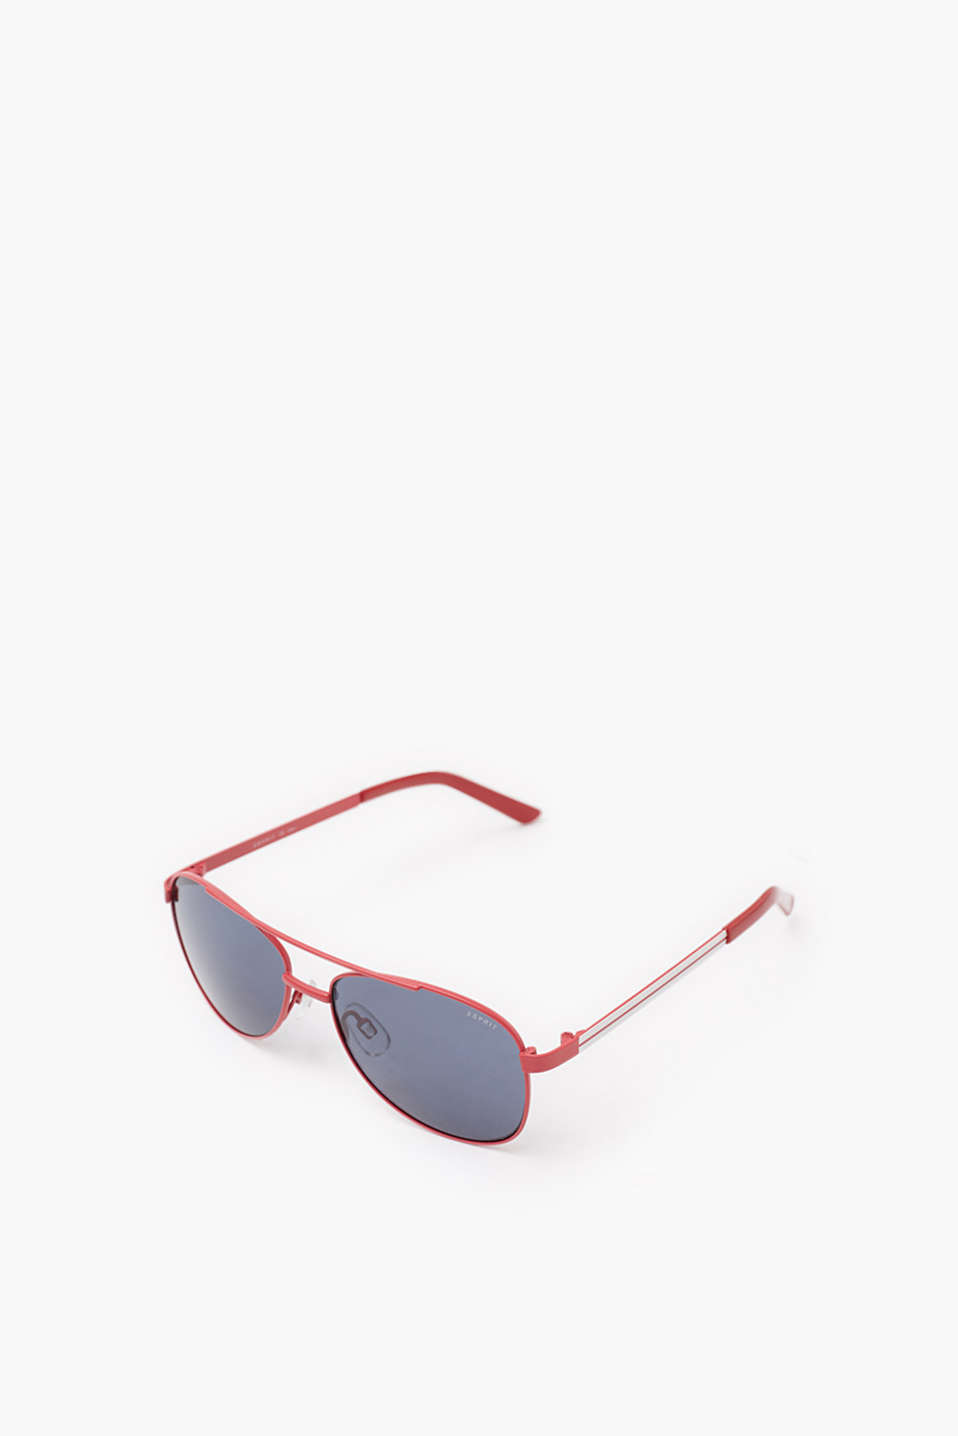 Colourful aviator sunglasses made of plastic